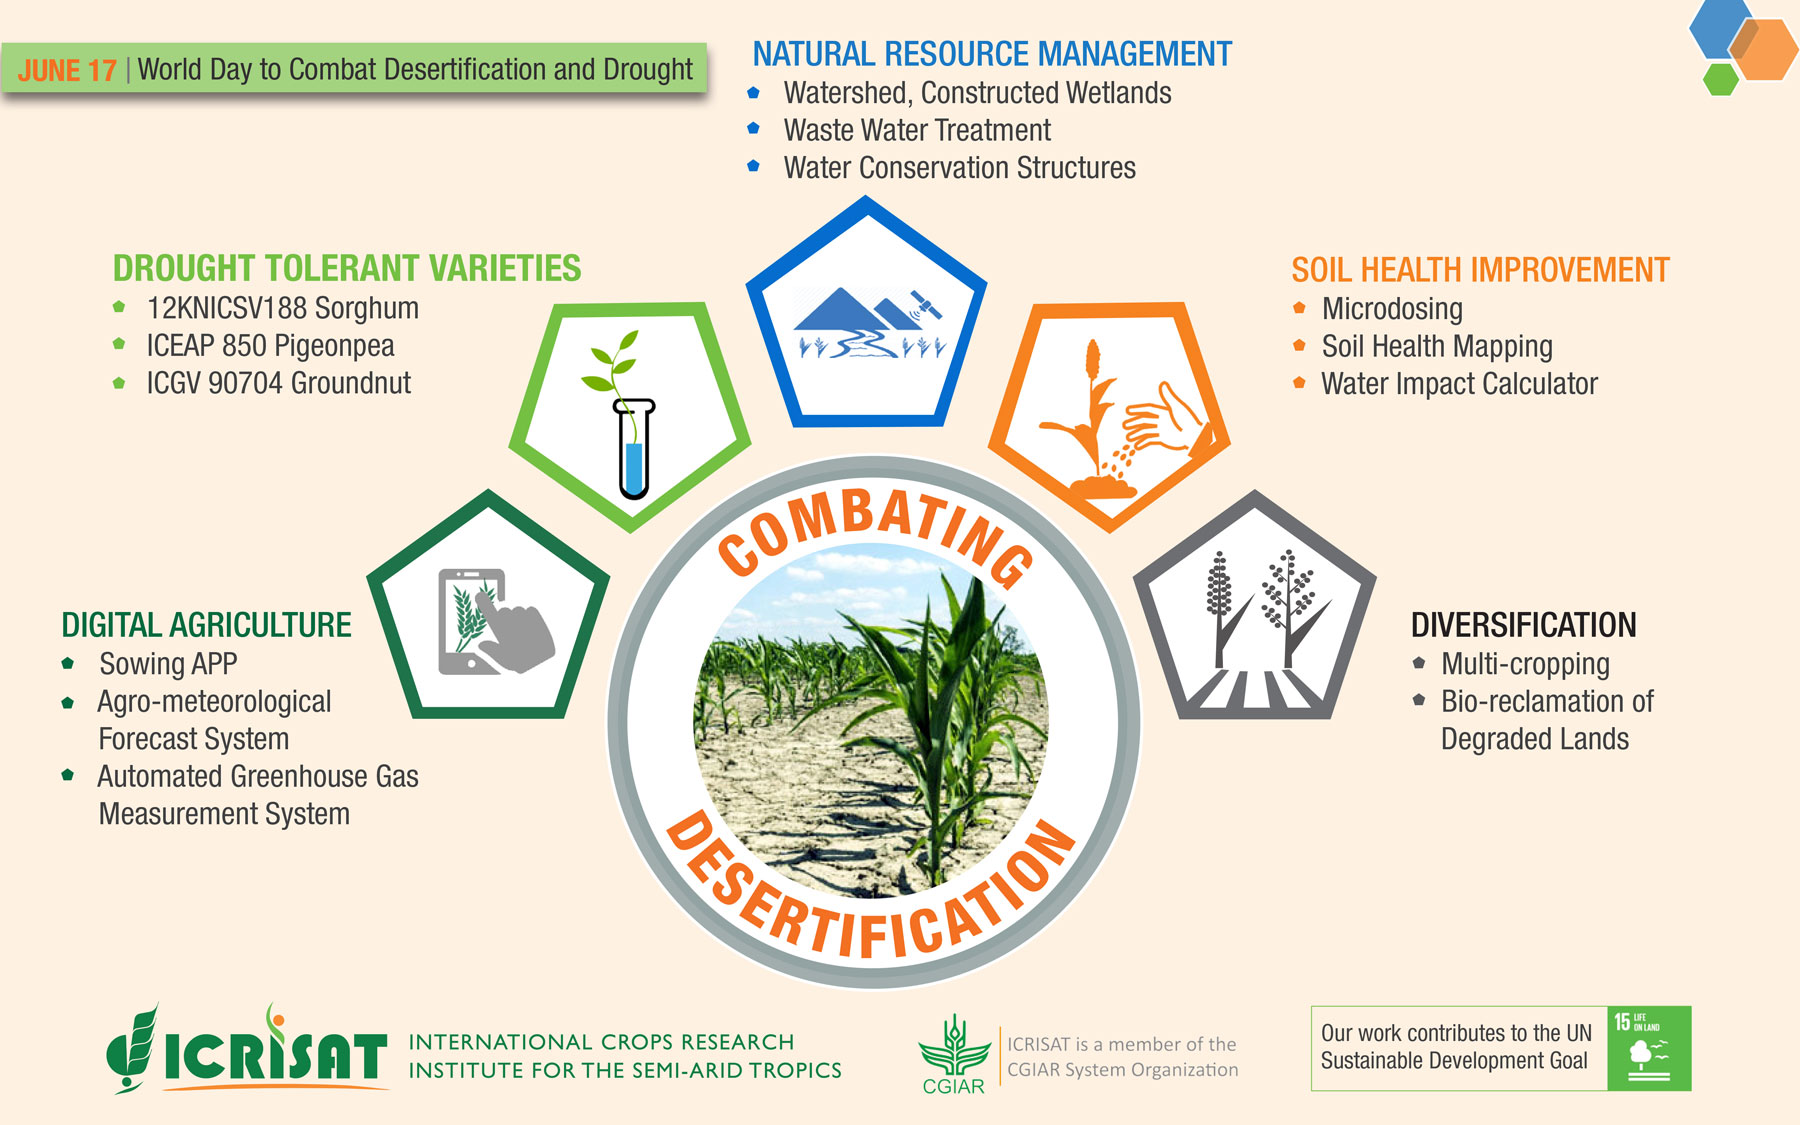 Combating Desertification and Drought